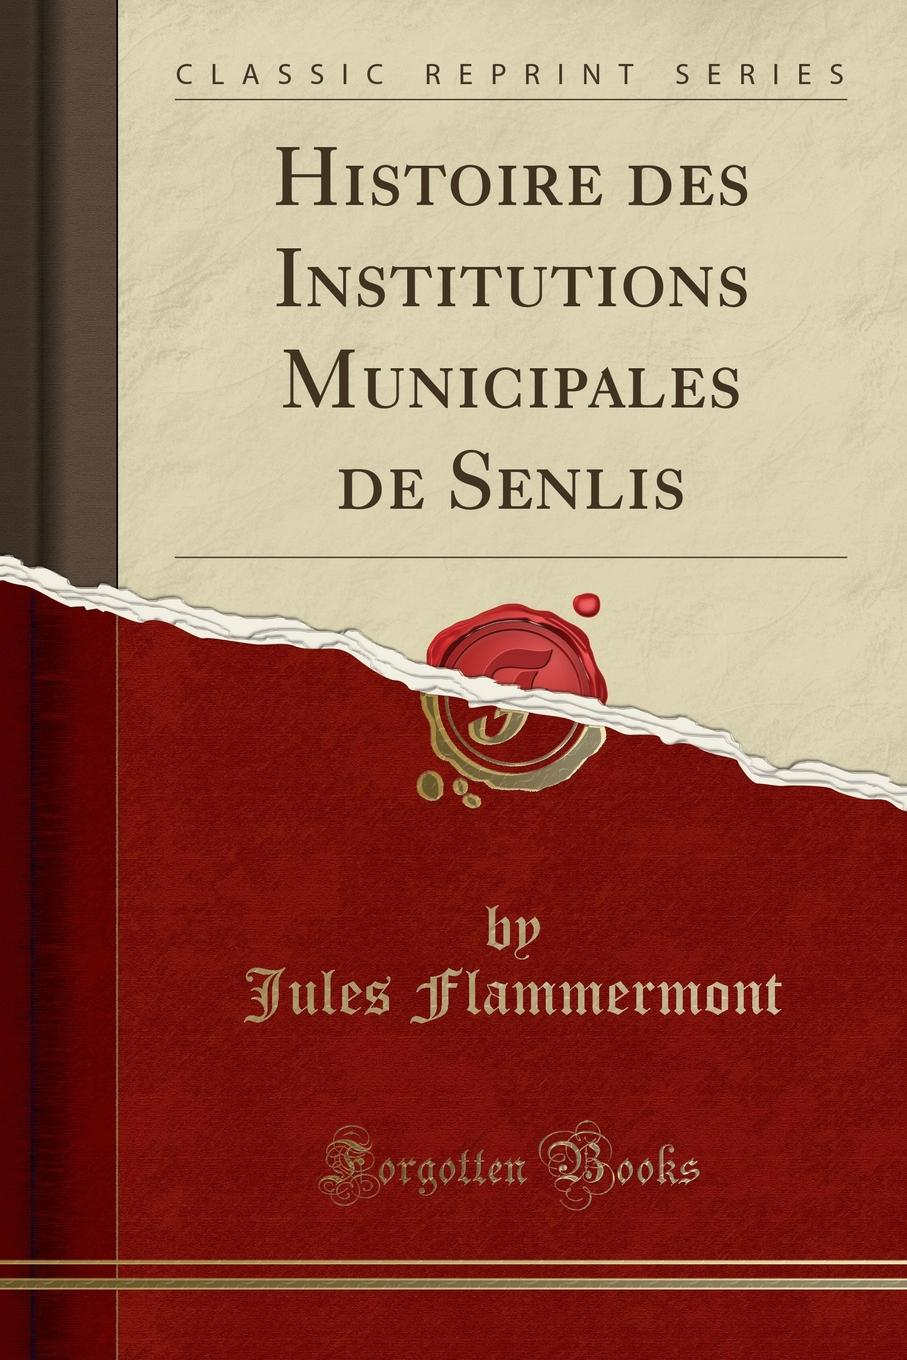 Jules Flammermont Histoire des Institutions Municipales de Senlis (Classic Reprint) gzeele new laptop ru keyboard for asus k46 k46ca k46cb k46cm s46c s46cb s46cm s46ca without frame ru russian layout keyboard